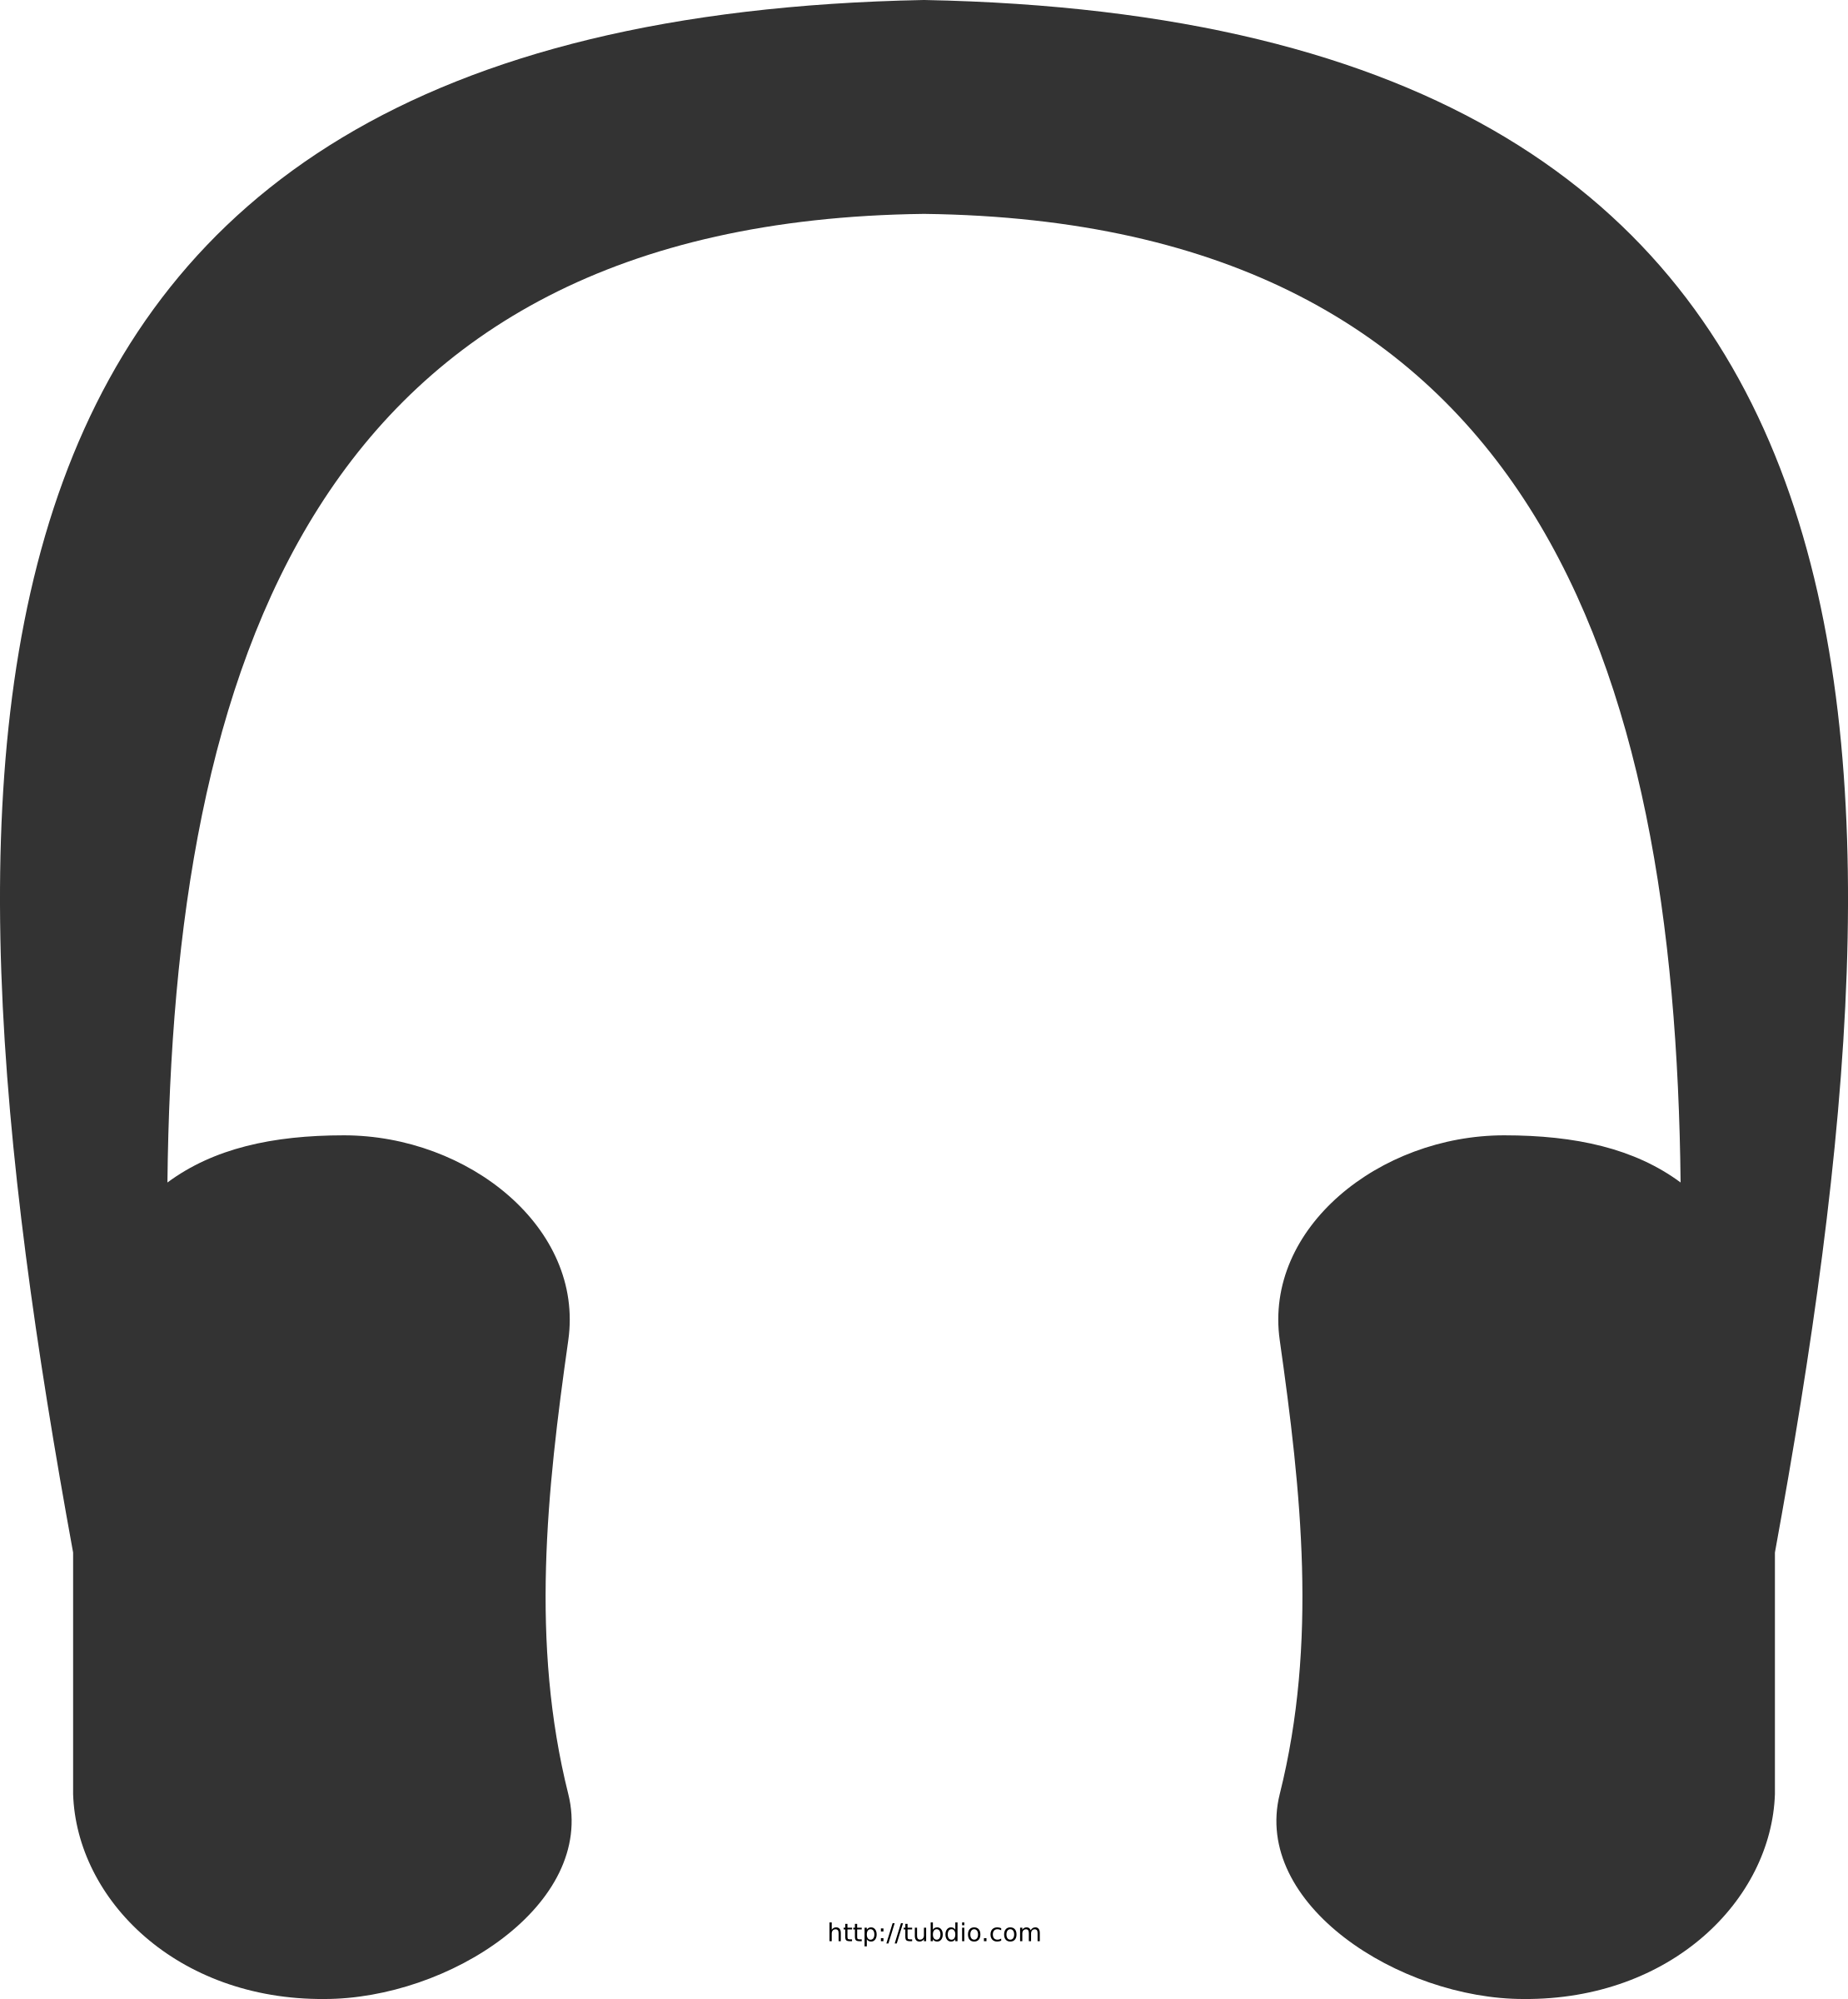 Headphones icon by mlampret